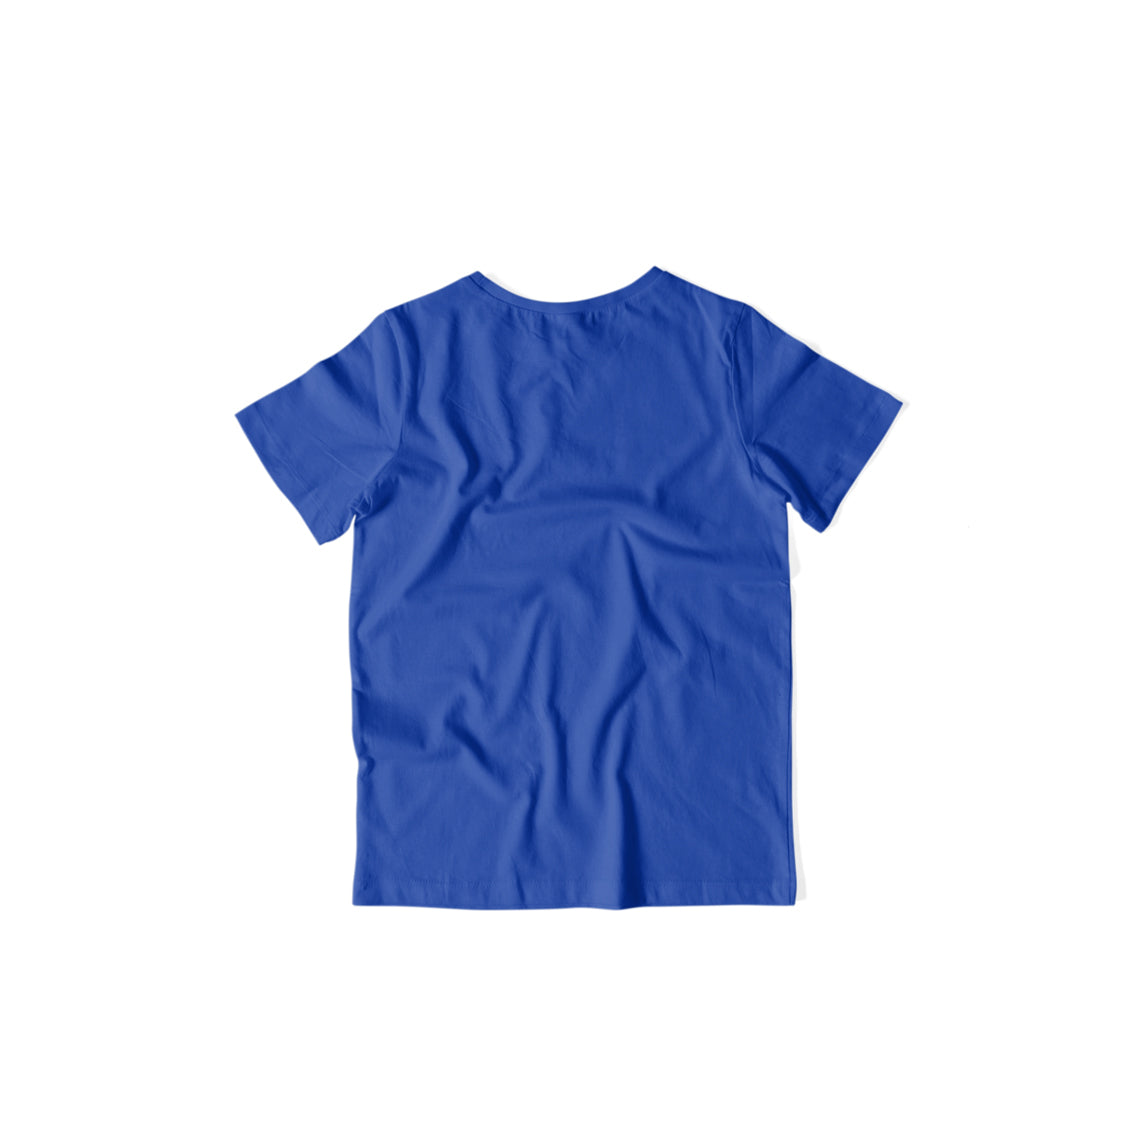 Just Chillin' | Kids Half Sleeve T-shirt